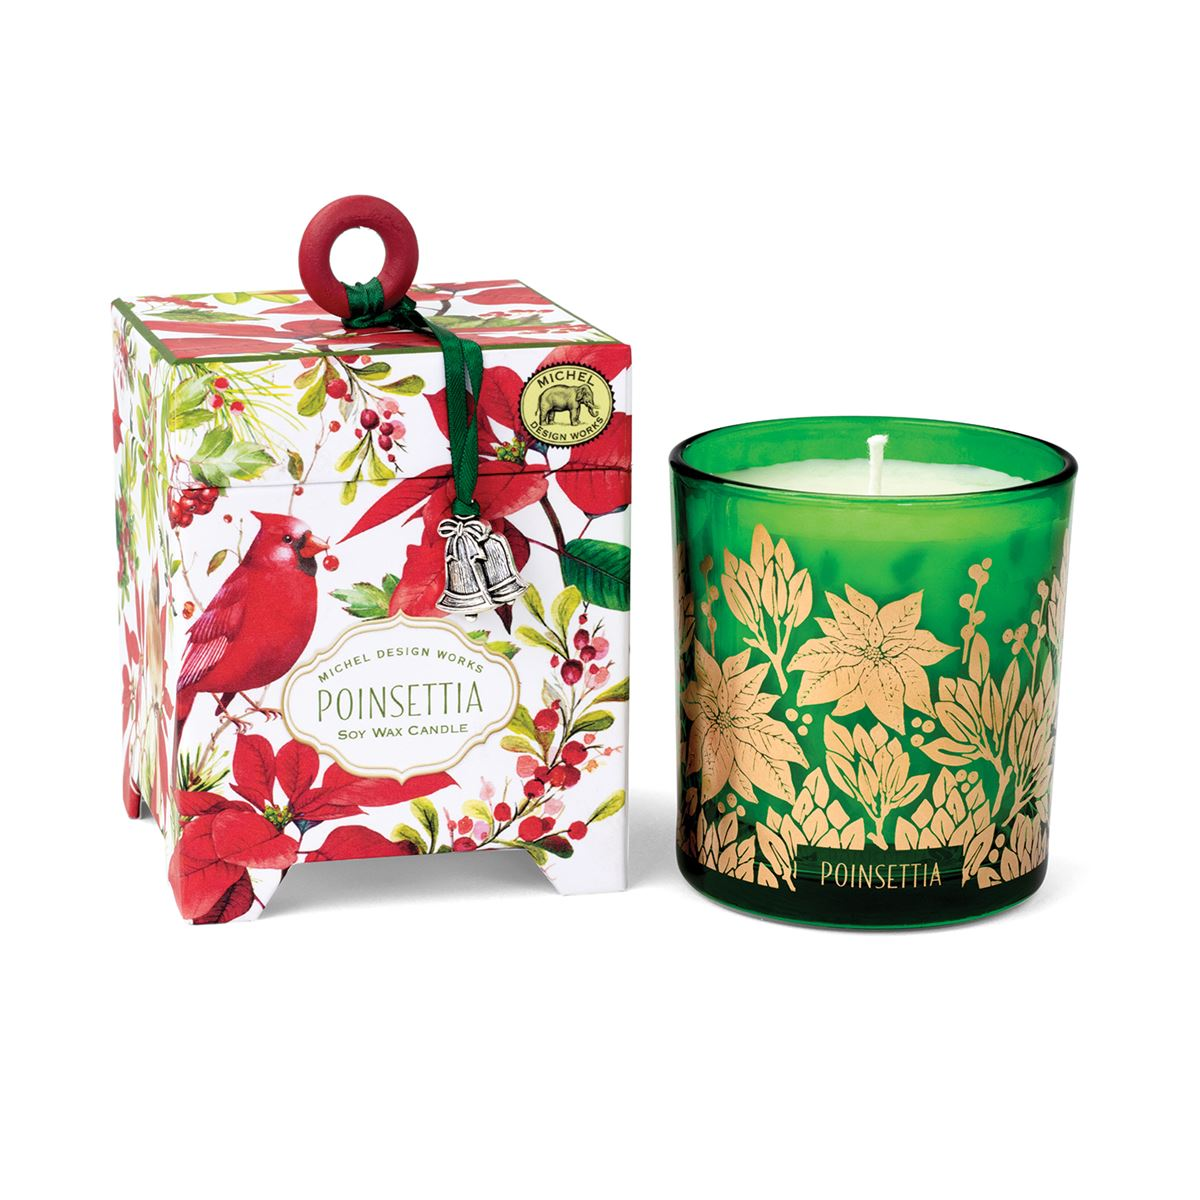 Michel Design Works Poinsettia Candle 6.5oz | Putti Christmas Canada